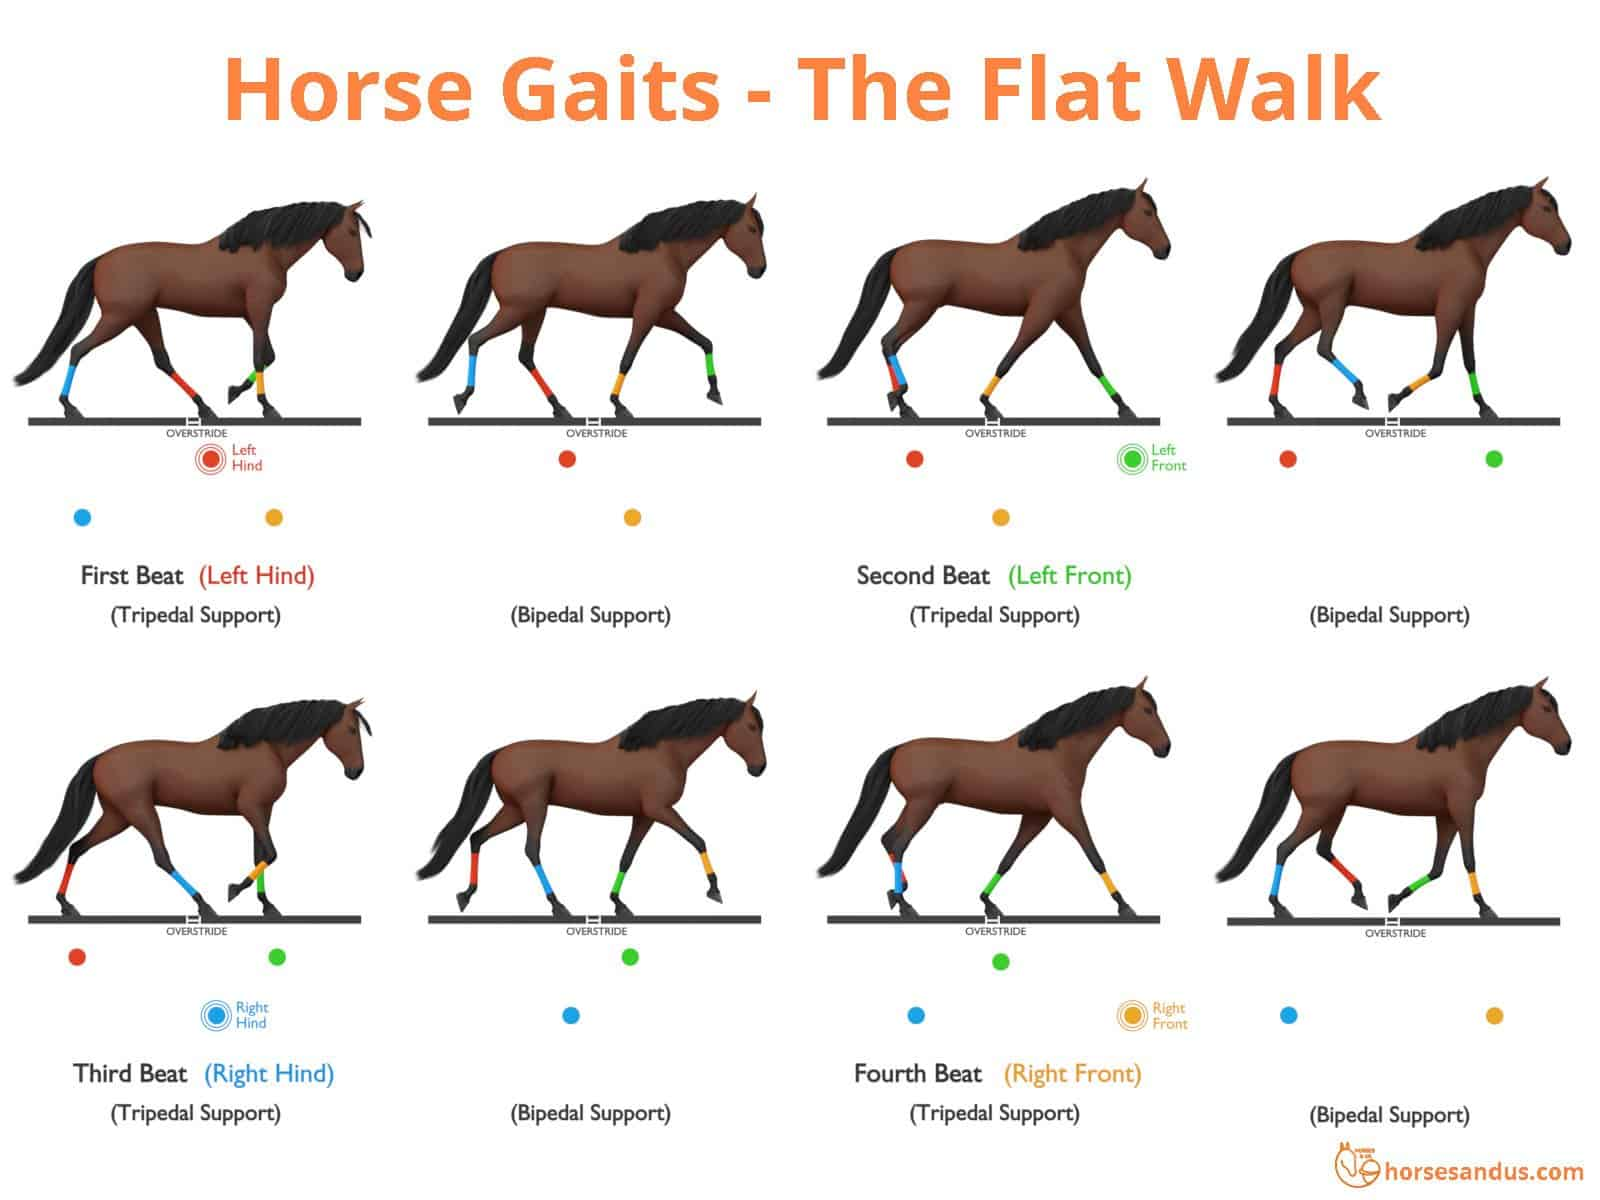 Sequence of footfalls for the Flat Foot Walk - Tennessee Walking Horse